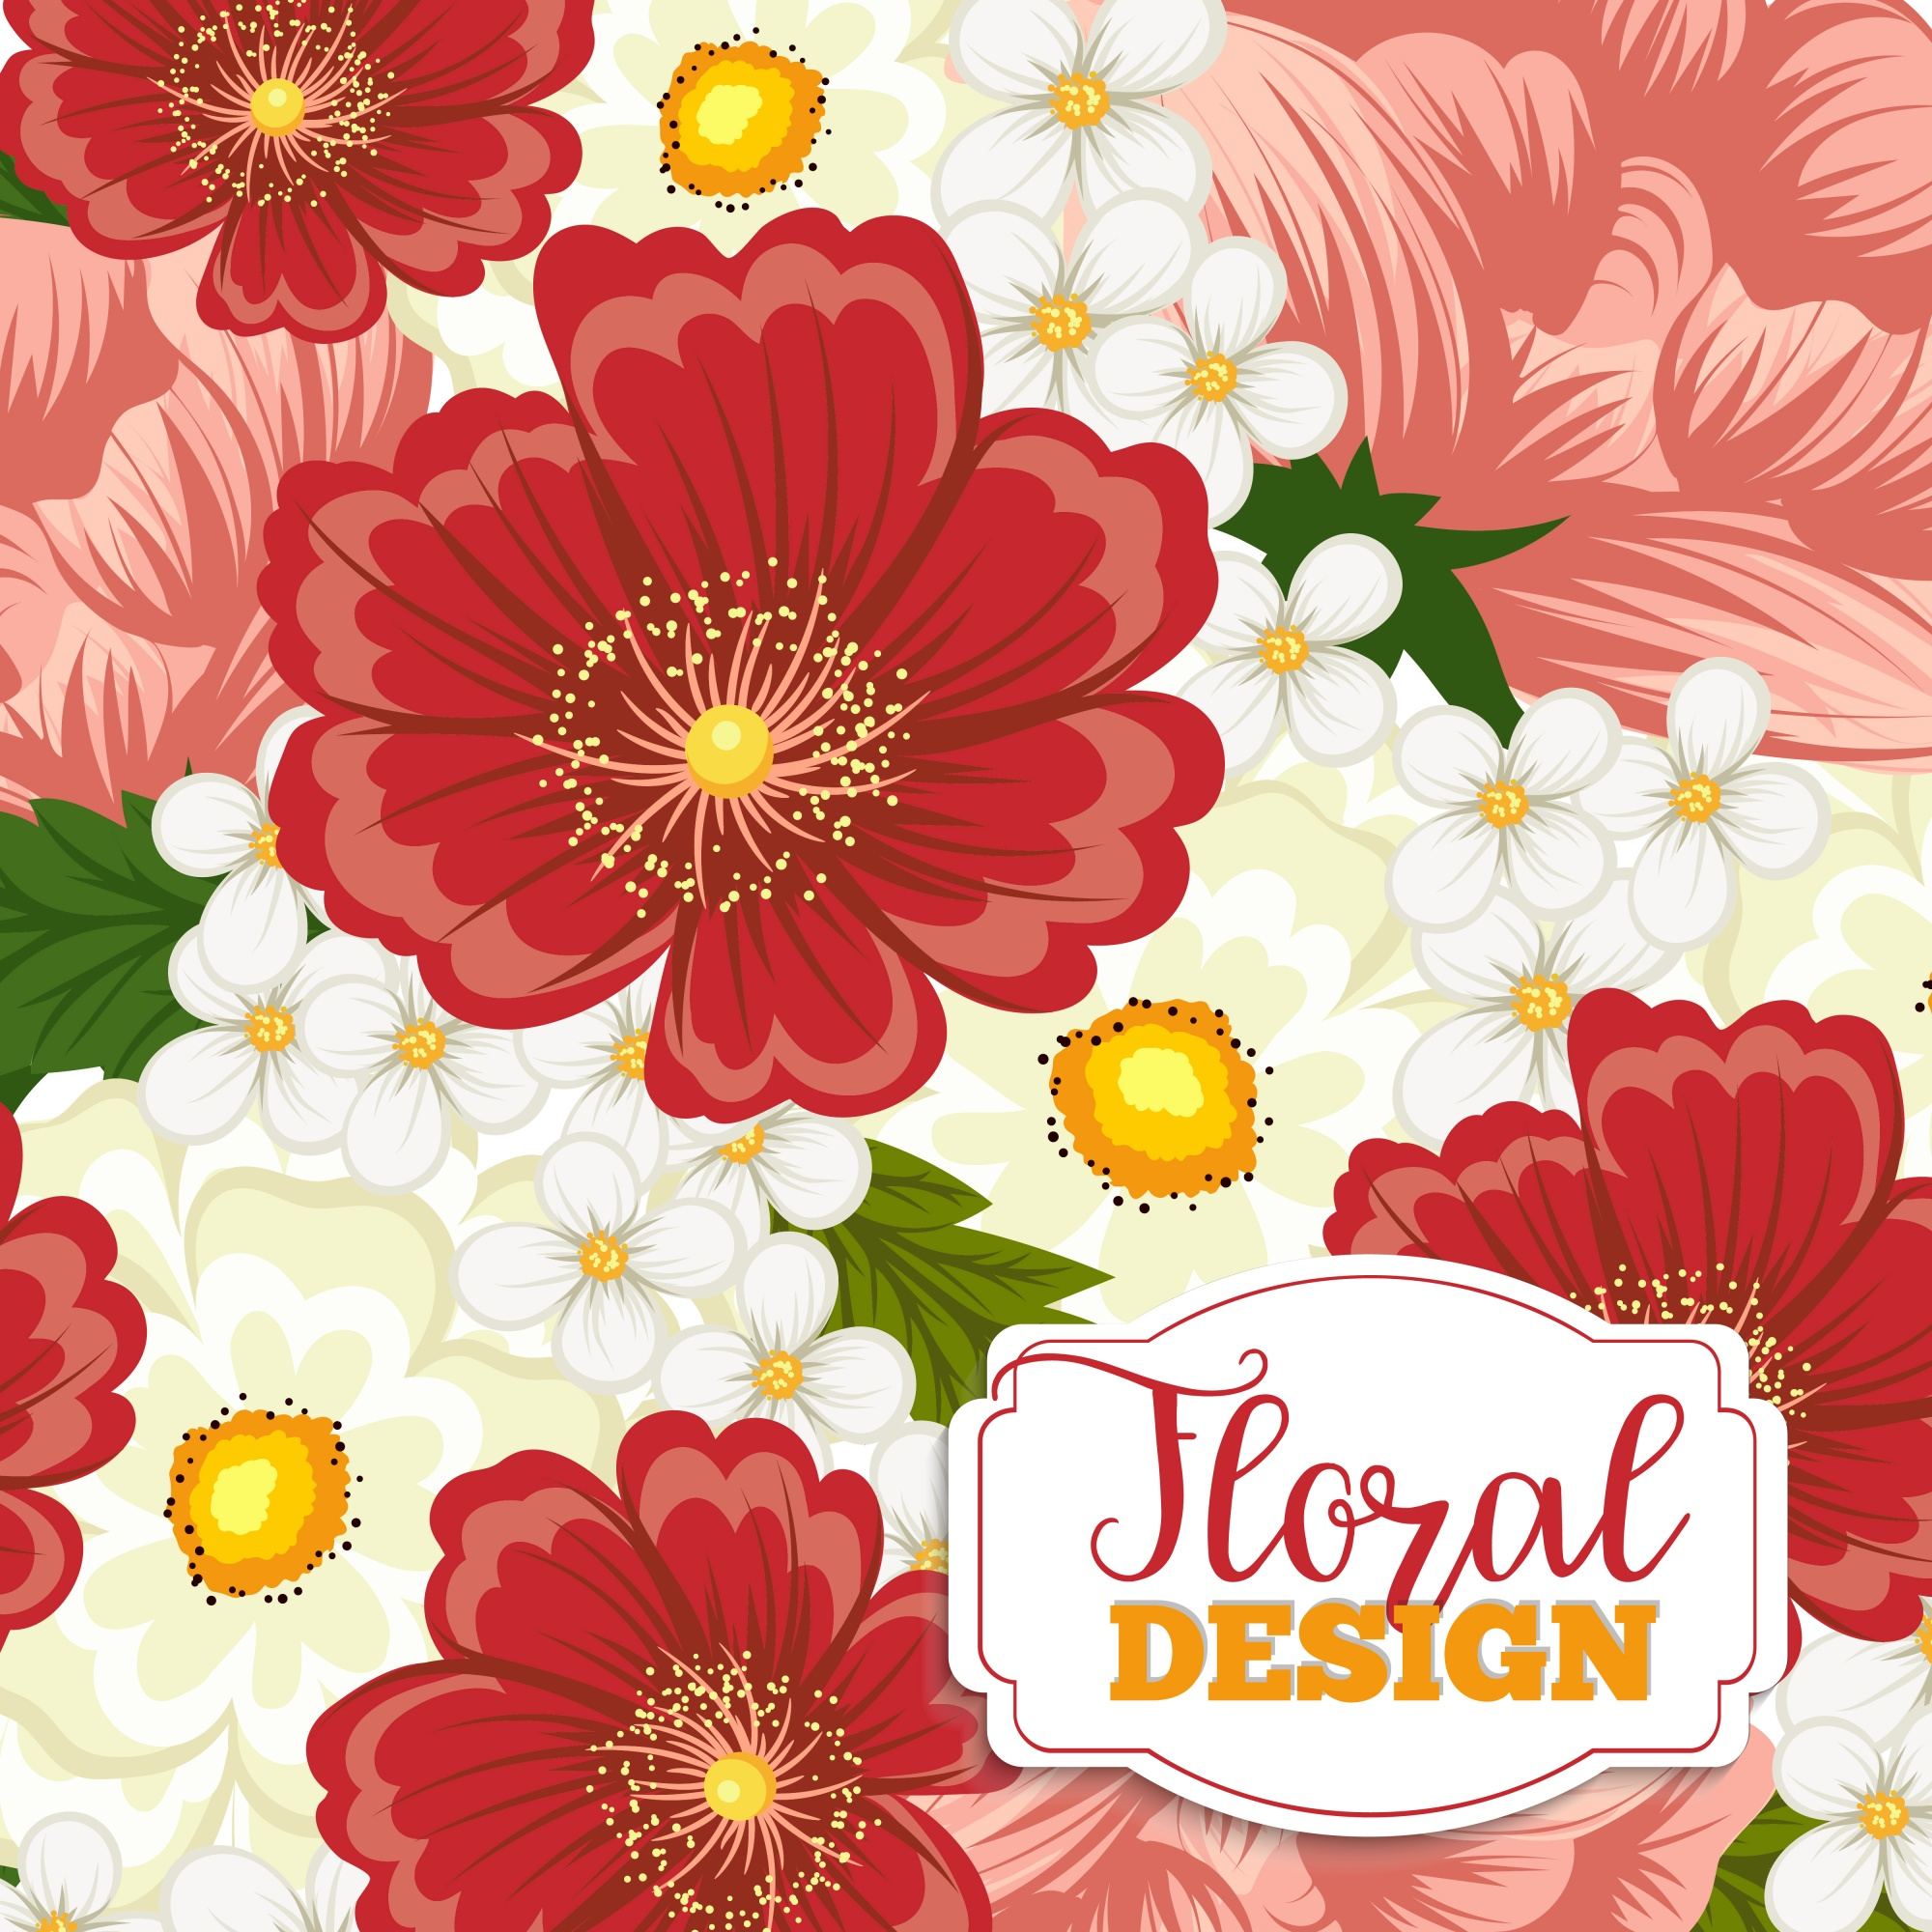 Belle illustration florale. Illustration vectorielle